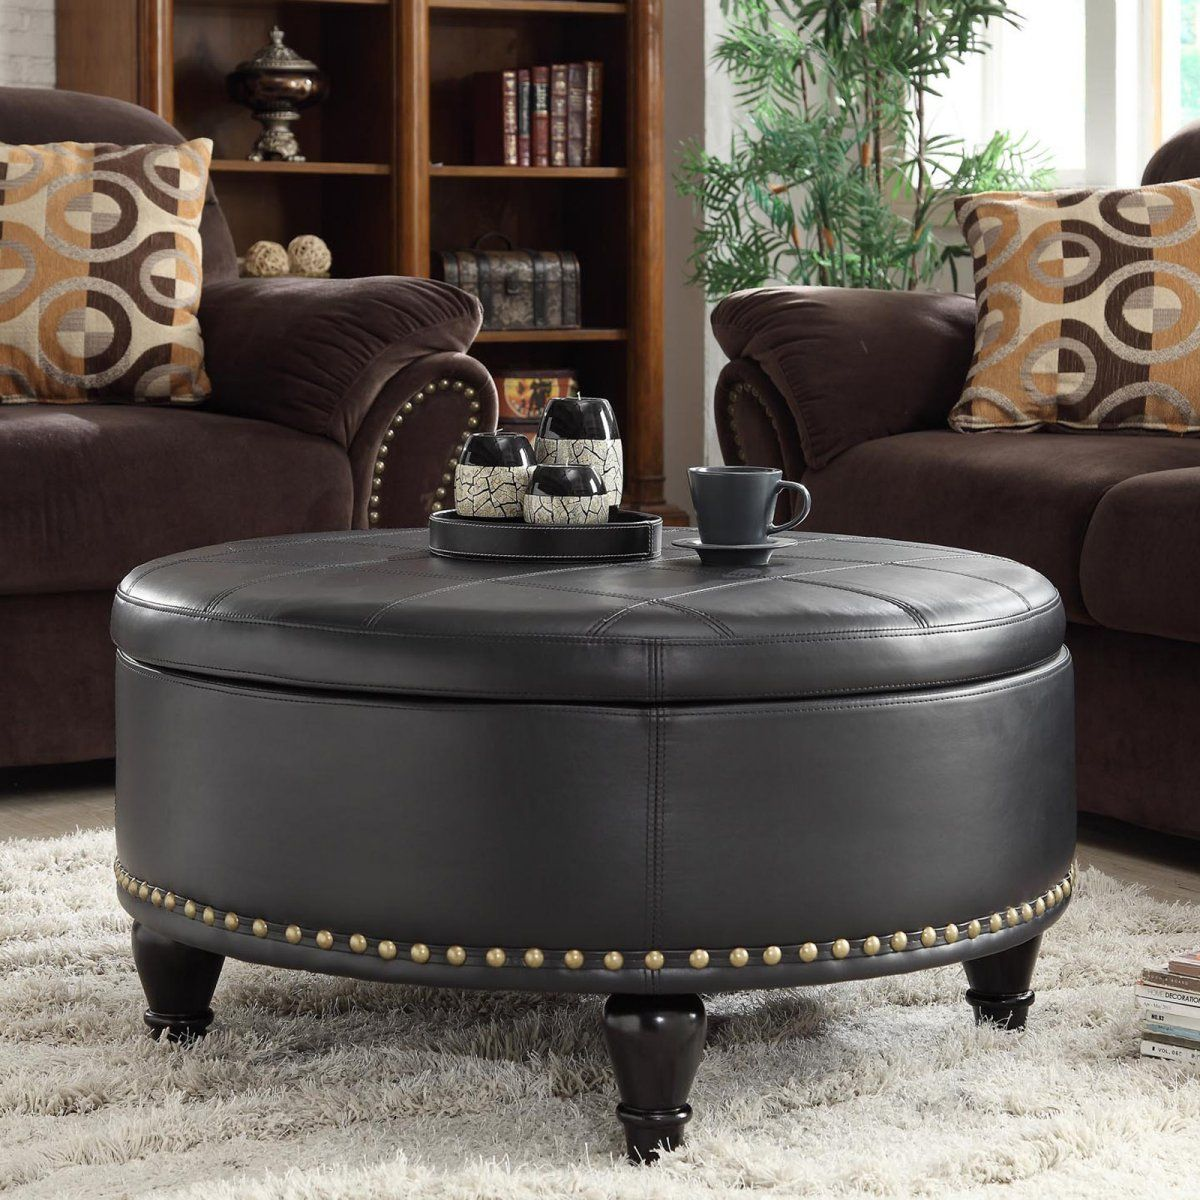 Chocolate Brown Sofa Living Room Ideas Combined With Round Leather Ottoman Coffee Table Storage